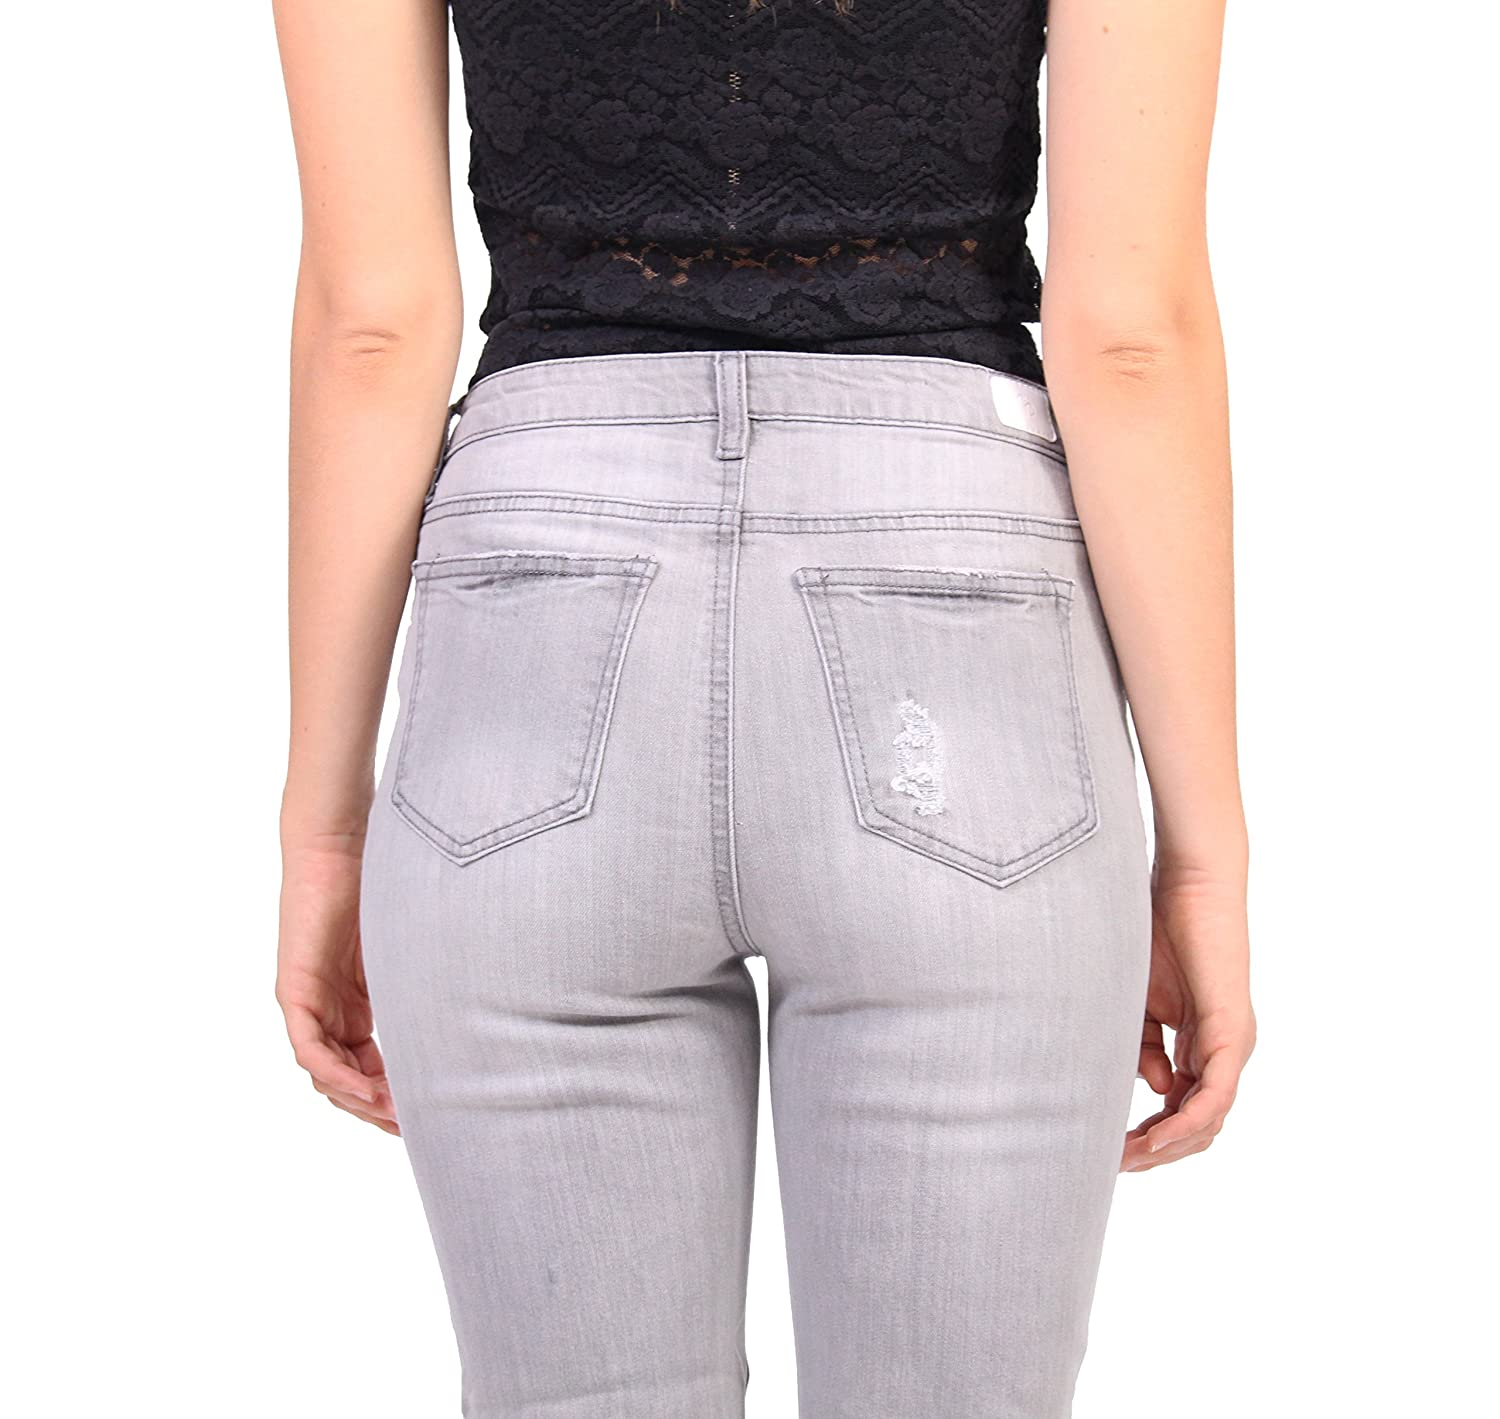 f27a6bee77 Amazon.com  Celebrity Pink Jeans Women Grey Distressed Ankle Straight Jeans  with 5 Front Button  Clothing